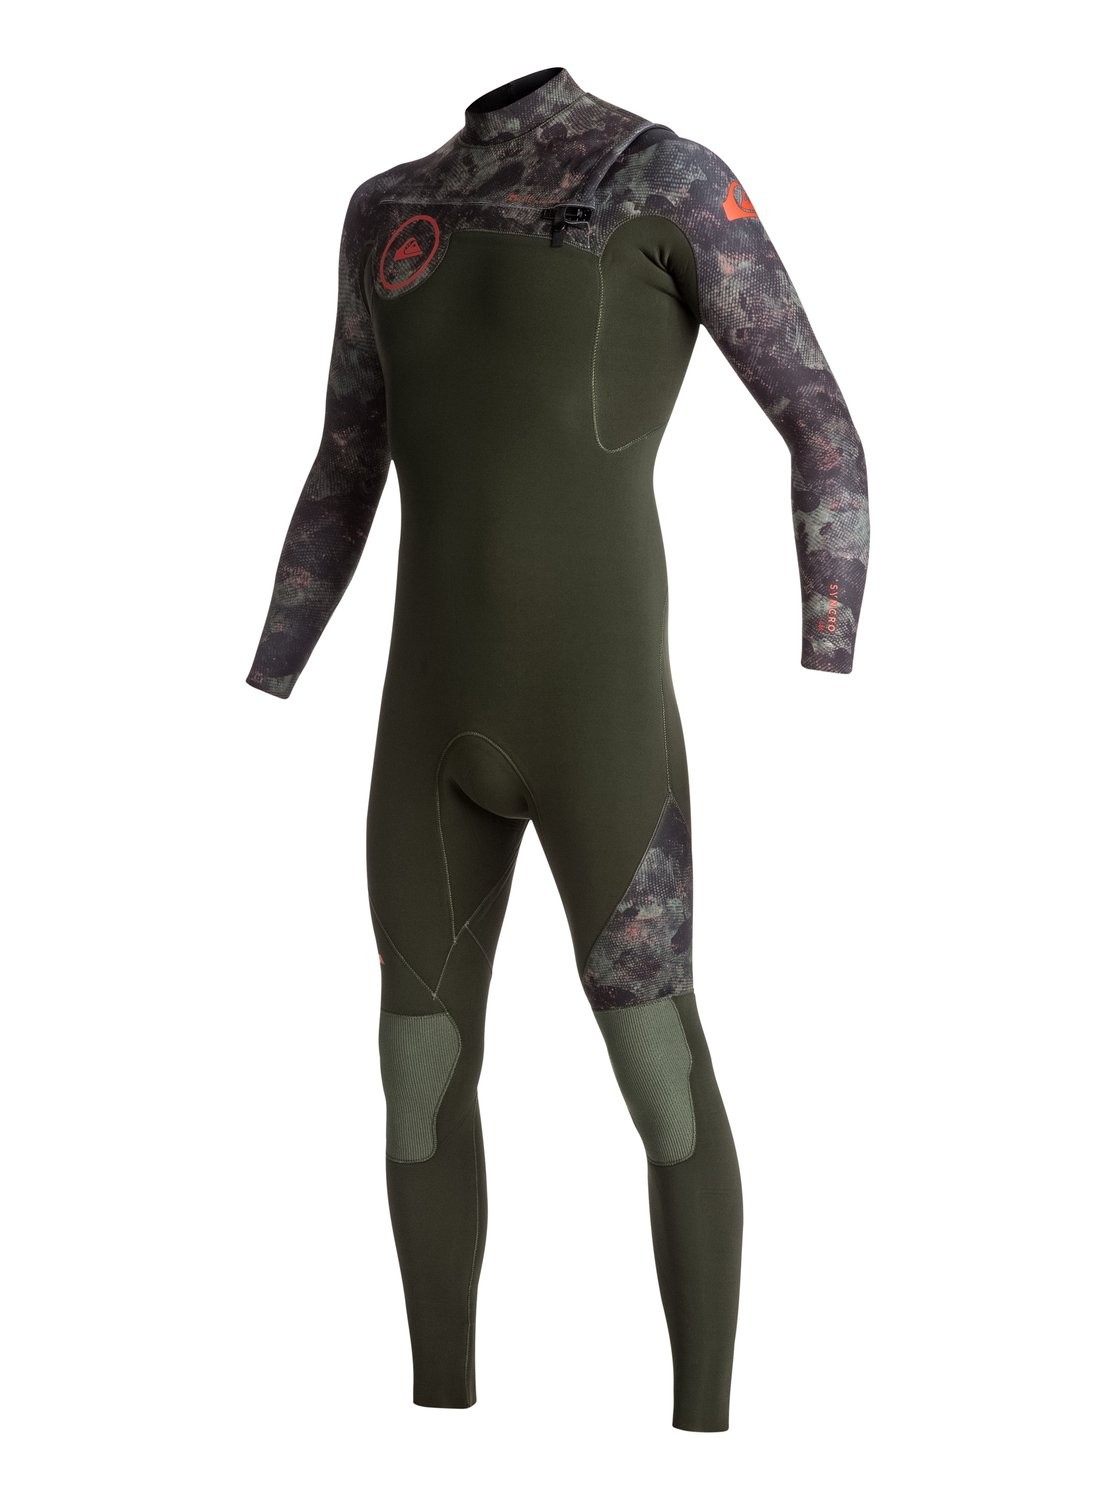 Quiksilver Combinaison 43 Zipcamouflage Syncro Mm De Gbs Surf Front j5AcL4Rq3